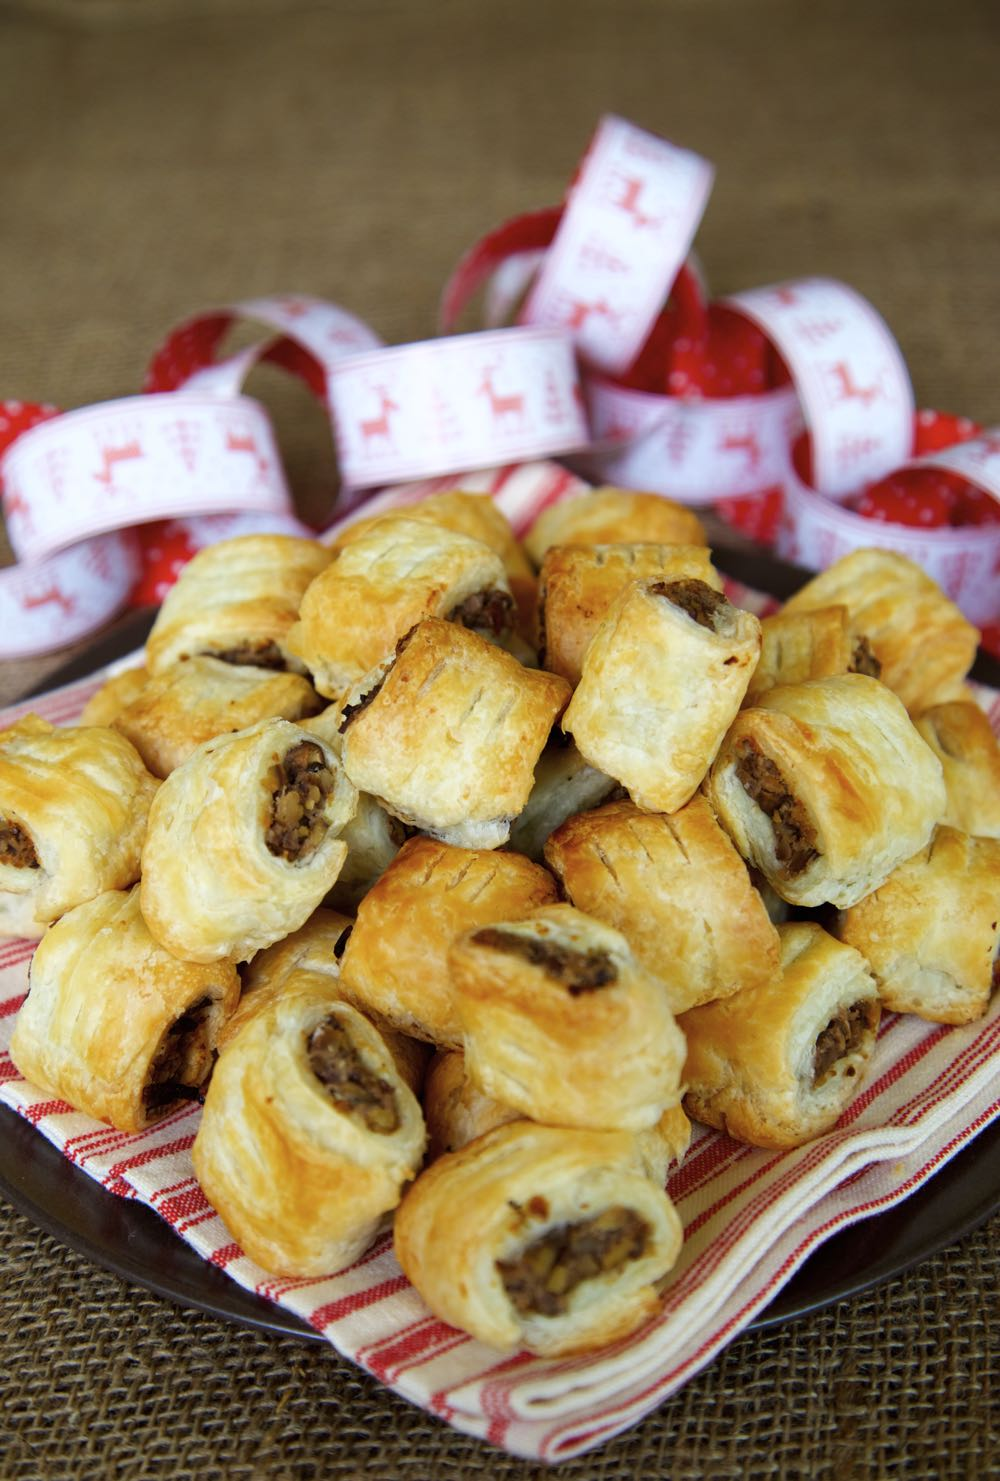 Vegan Christmas Canapés - mini vegan sausage rolls filled with chestnuts, mushrooms, red wine and herbs for a deeply savoury nibble.